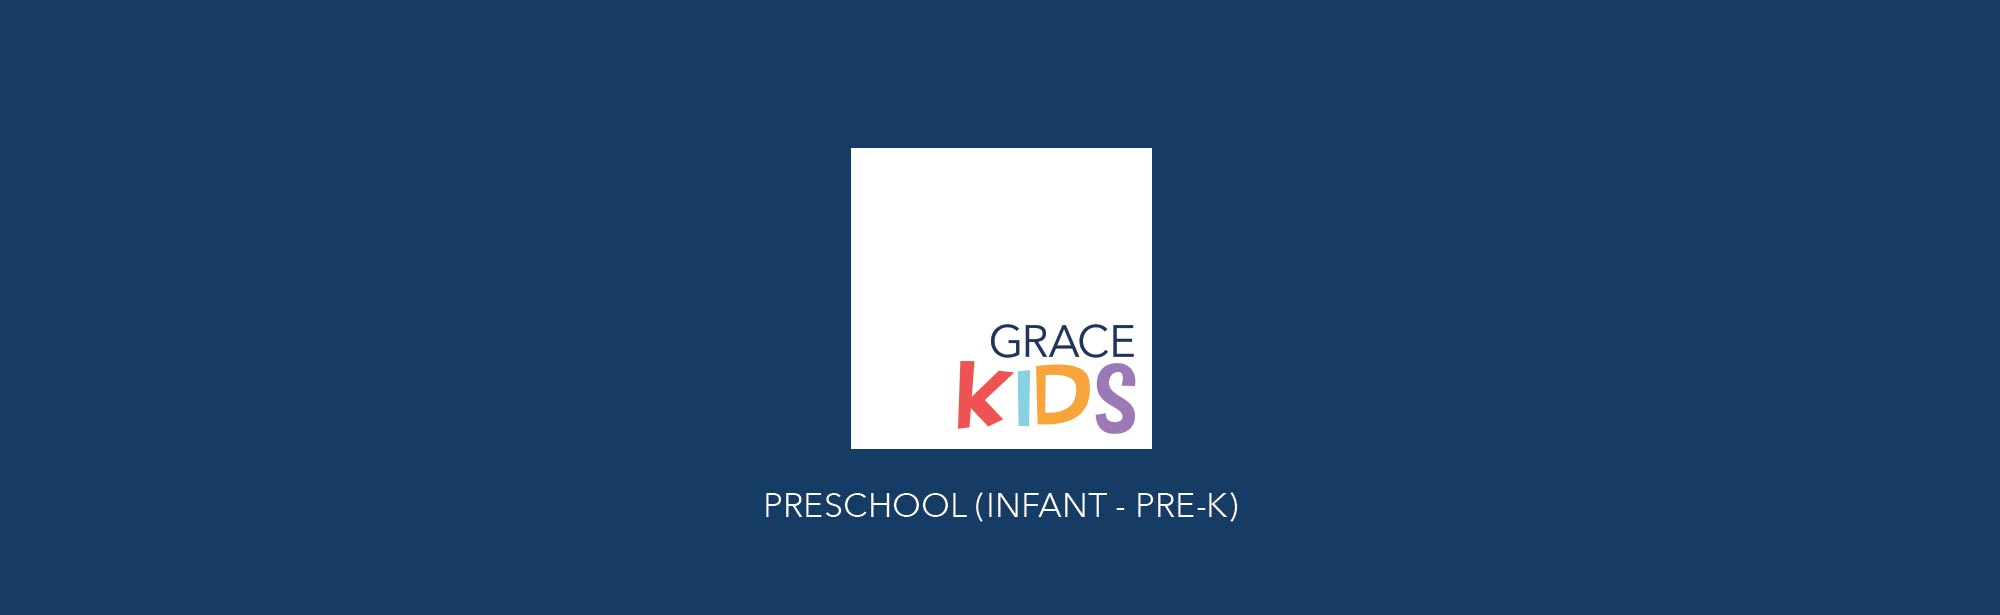 Grace Kids Preschool Ministry - Birth through Pre-K - Grace Community Church